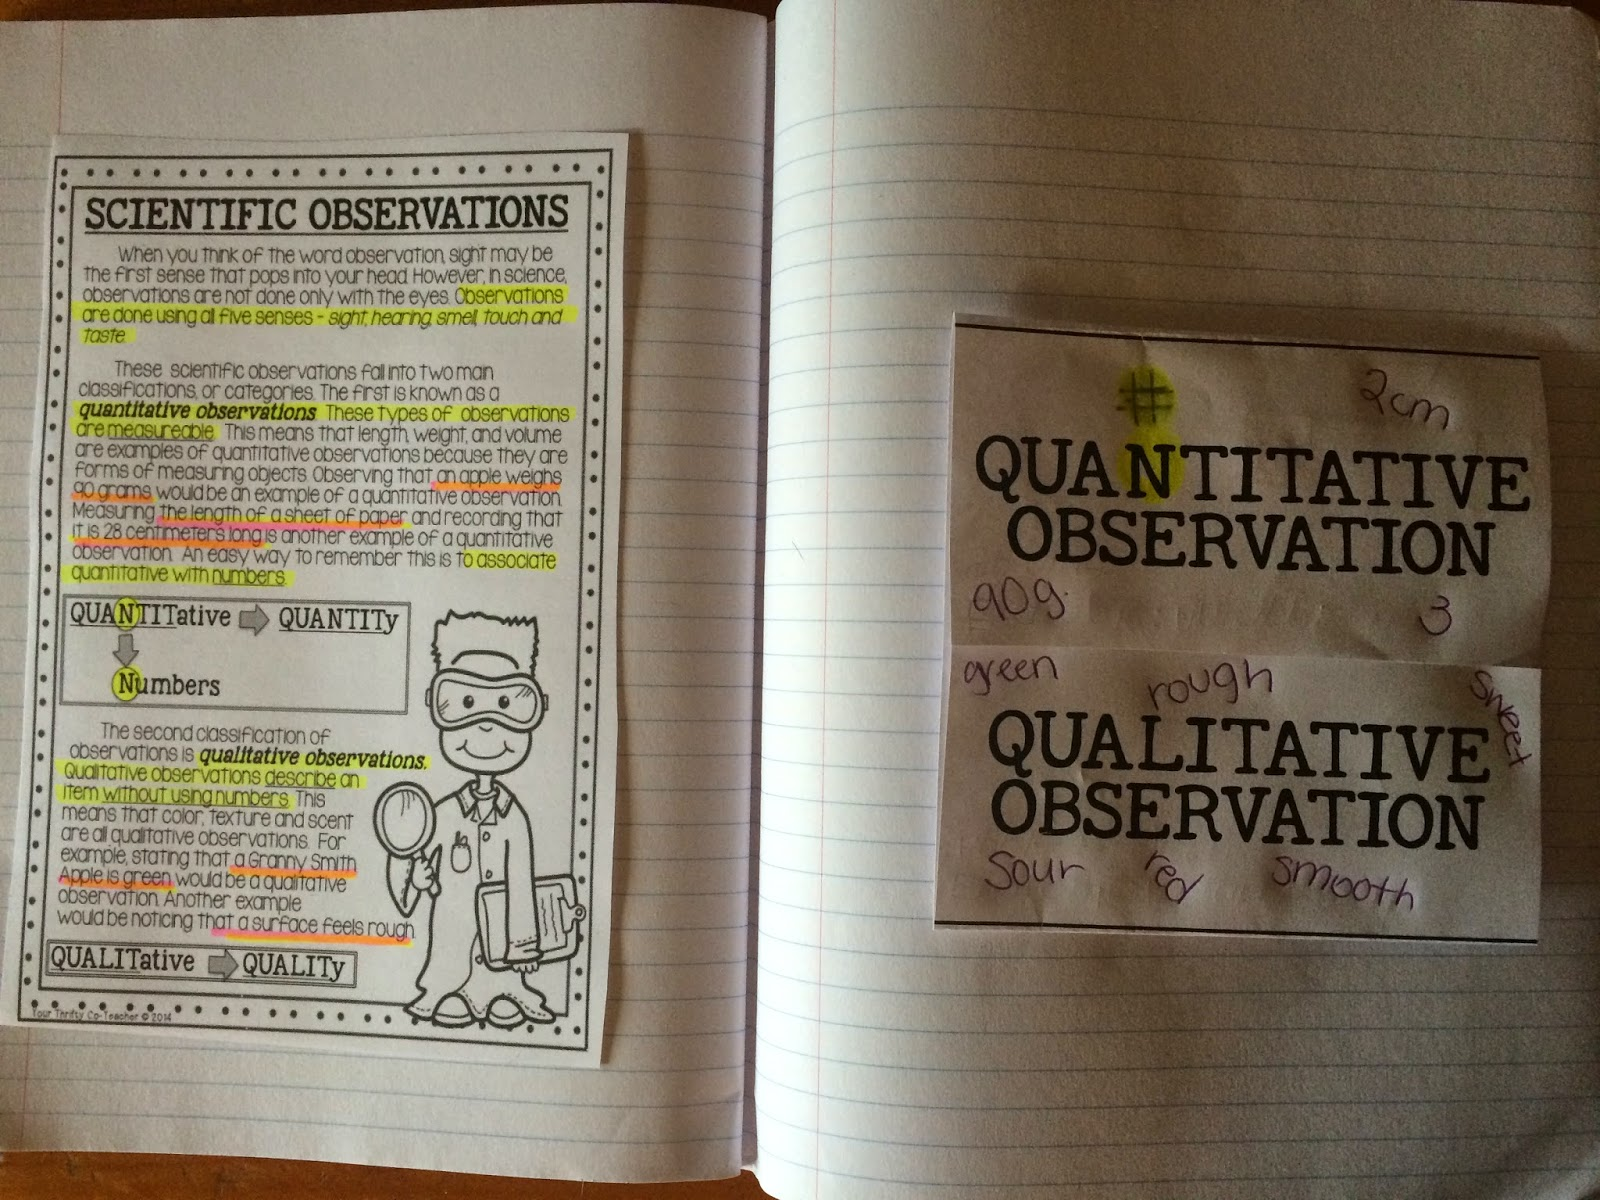 Taking A Closer Look Qualitative And Quantitative Observations